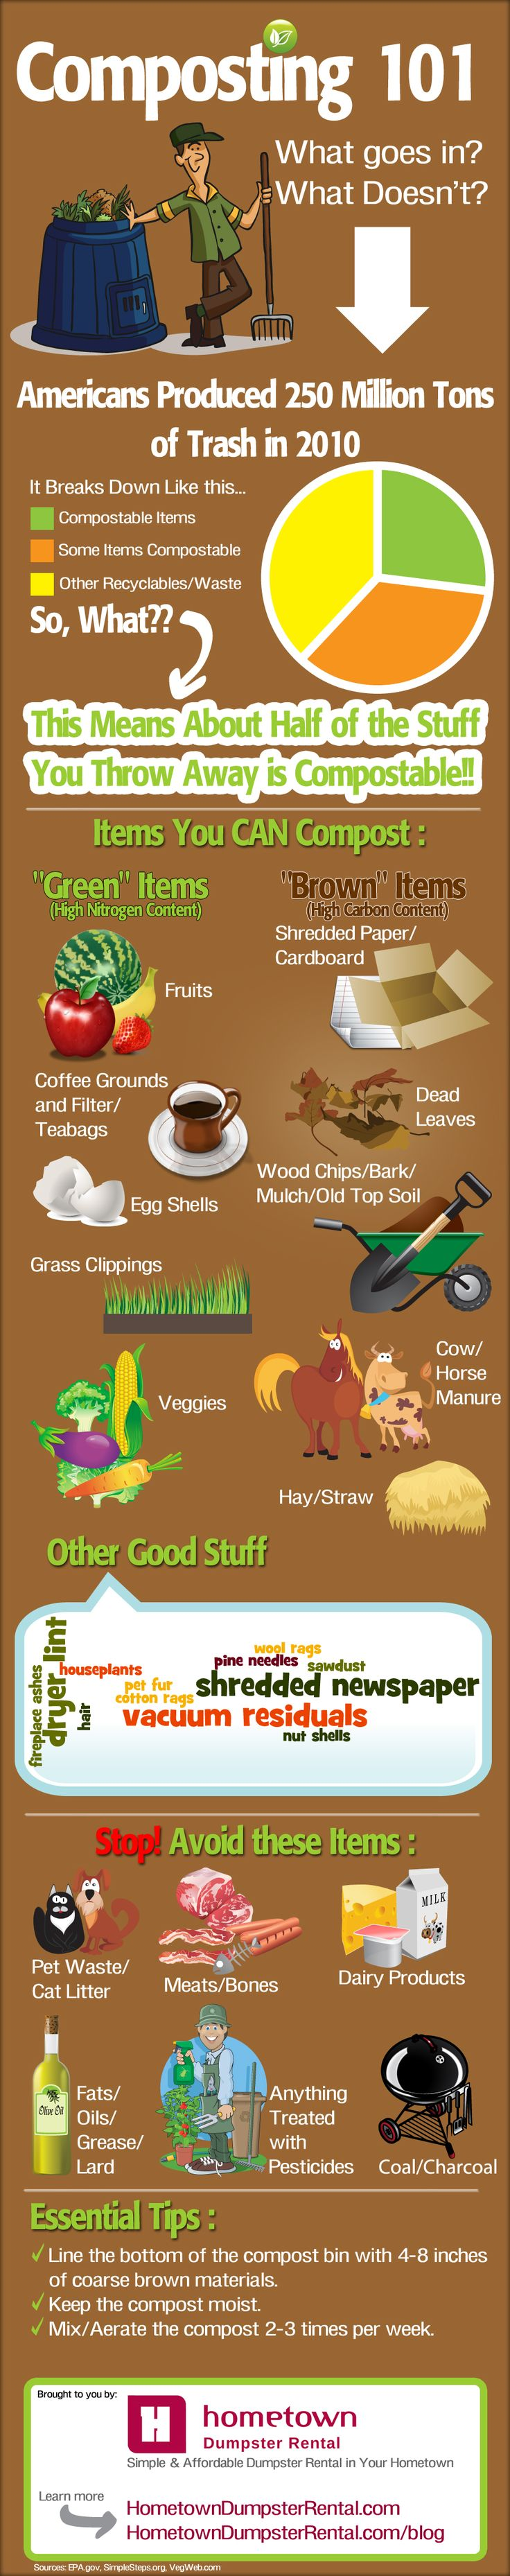 Composting 101 [Infographic]